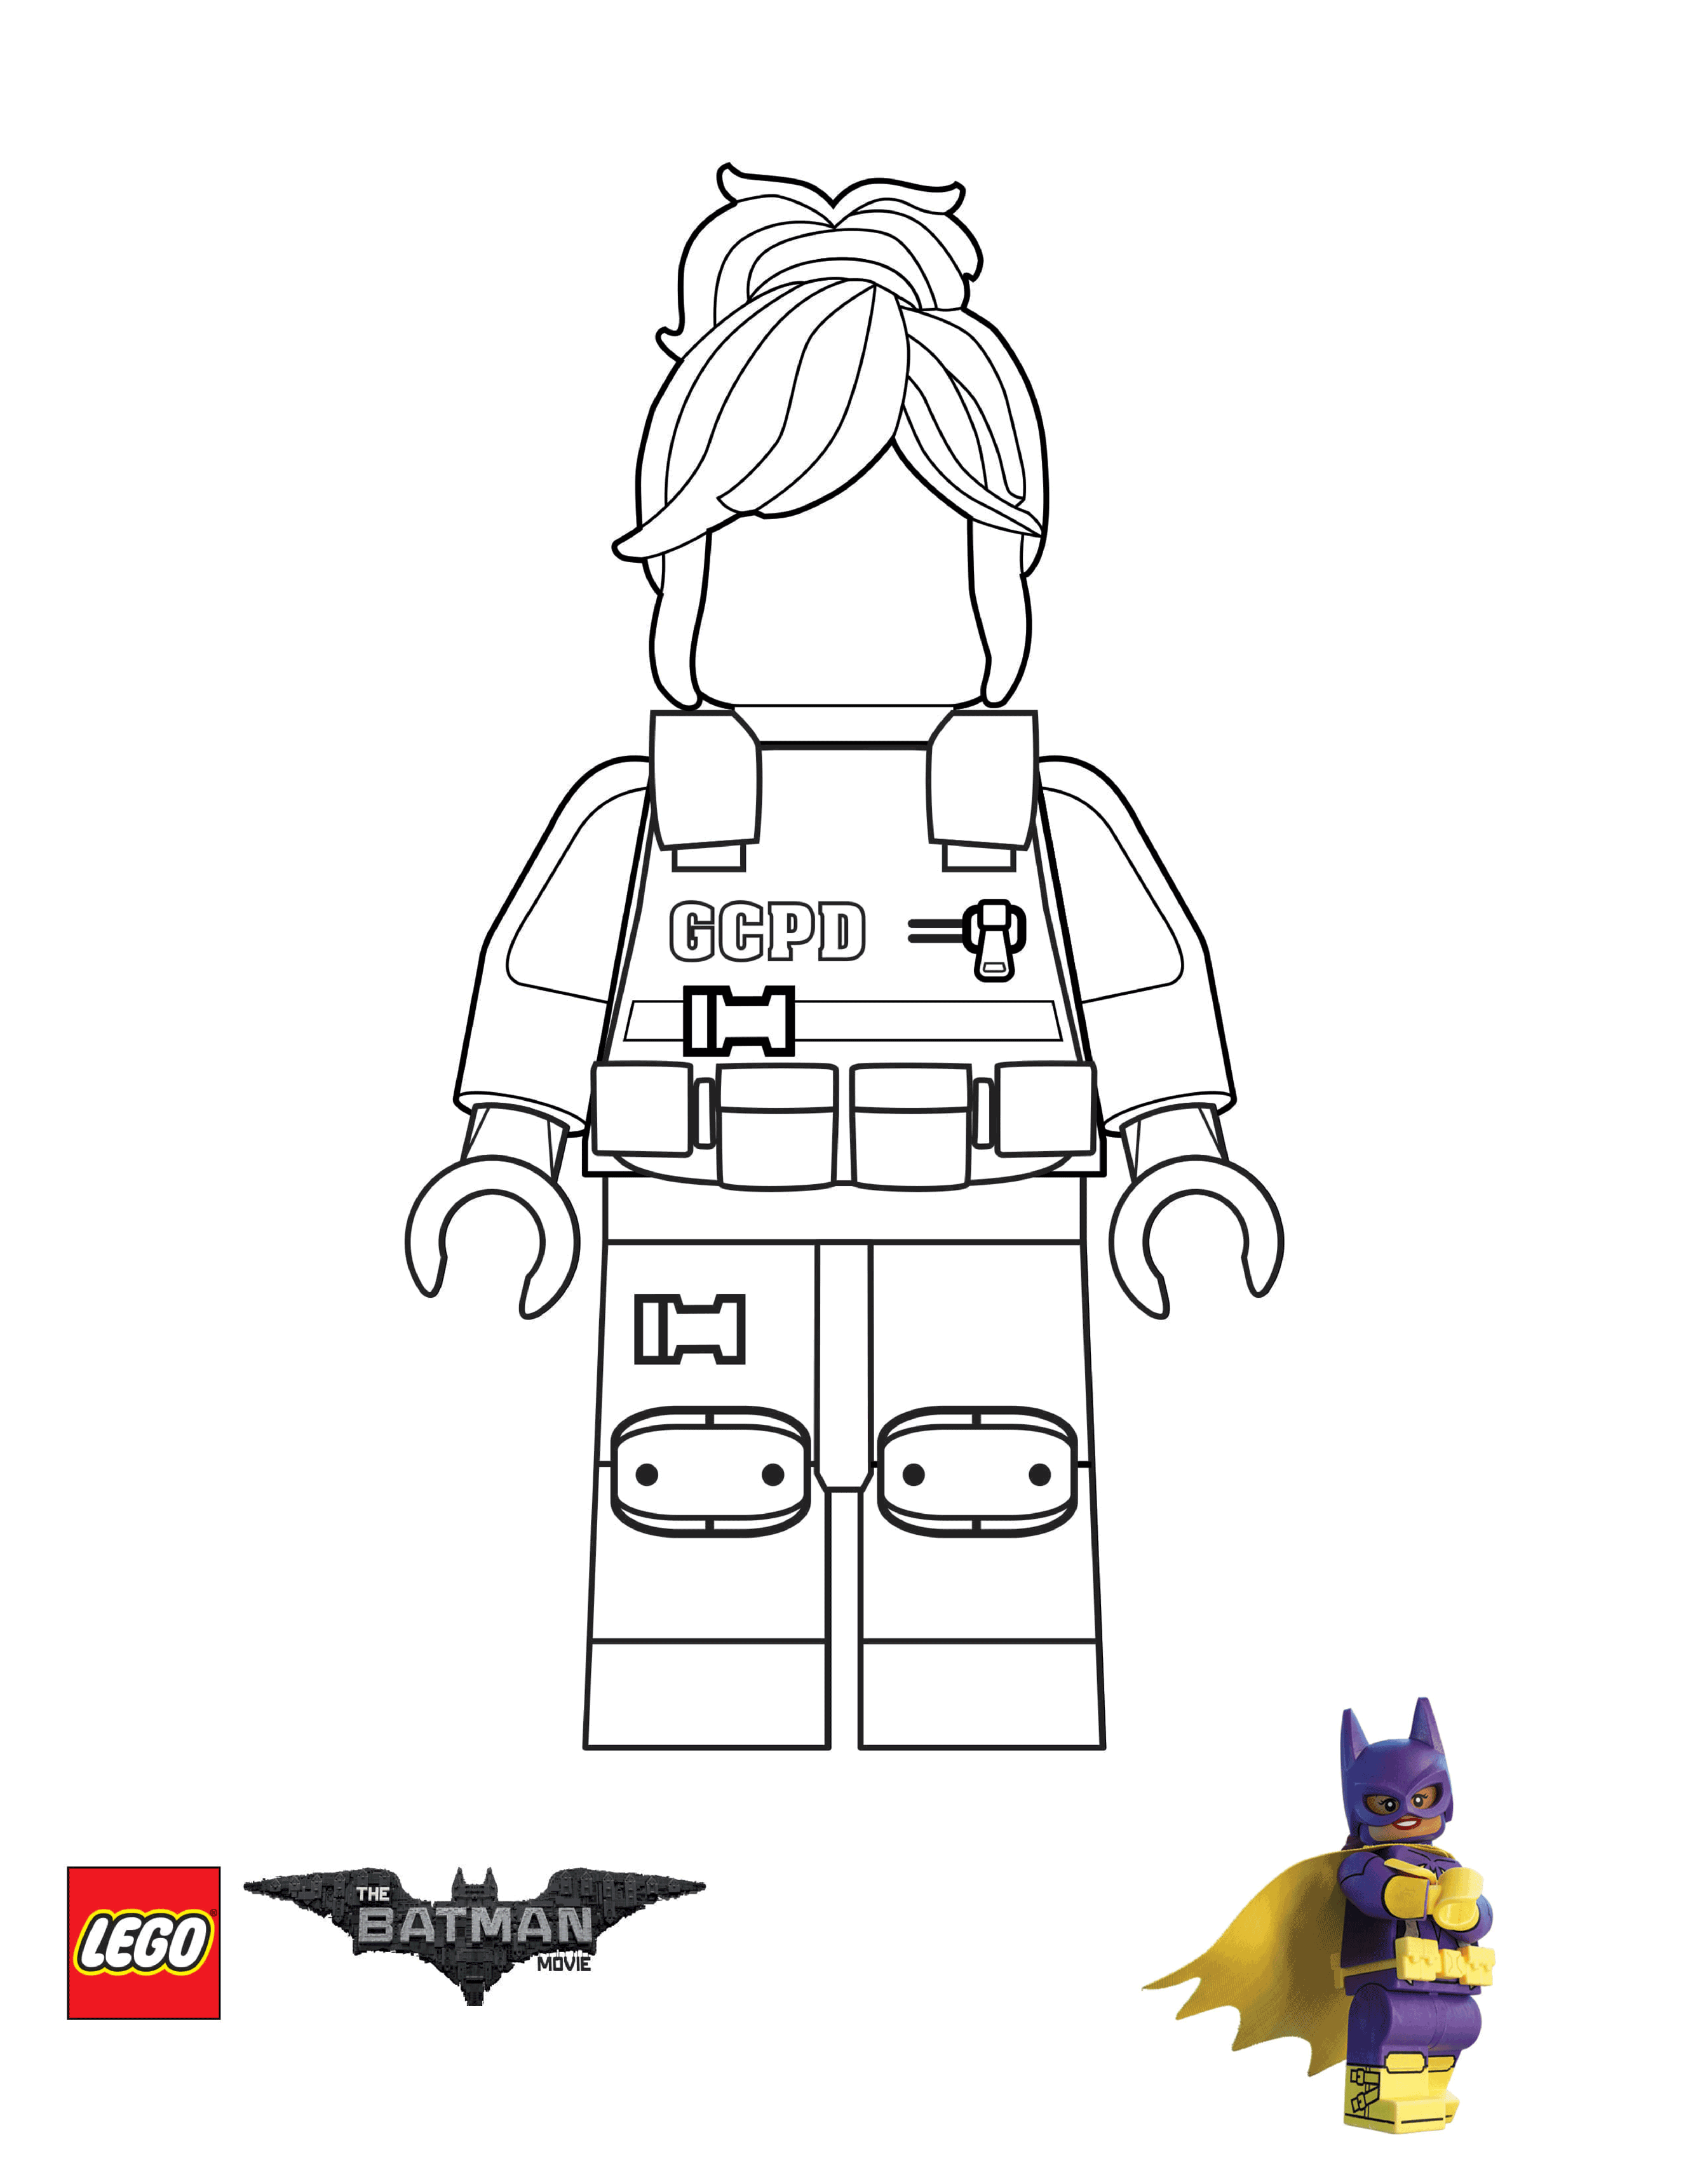 GCPD Barbara Gordon Lego Batman Movie